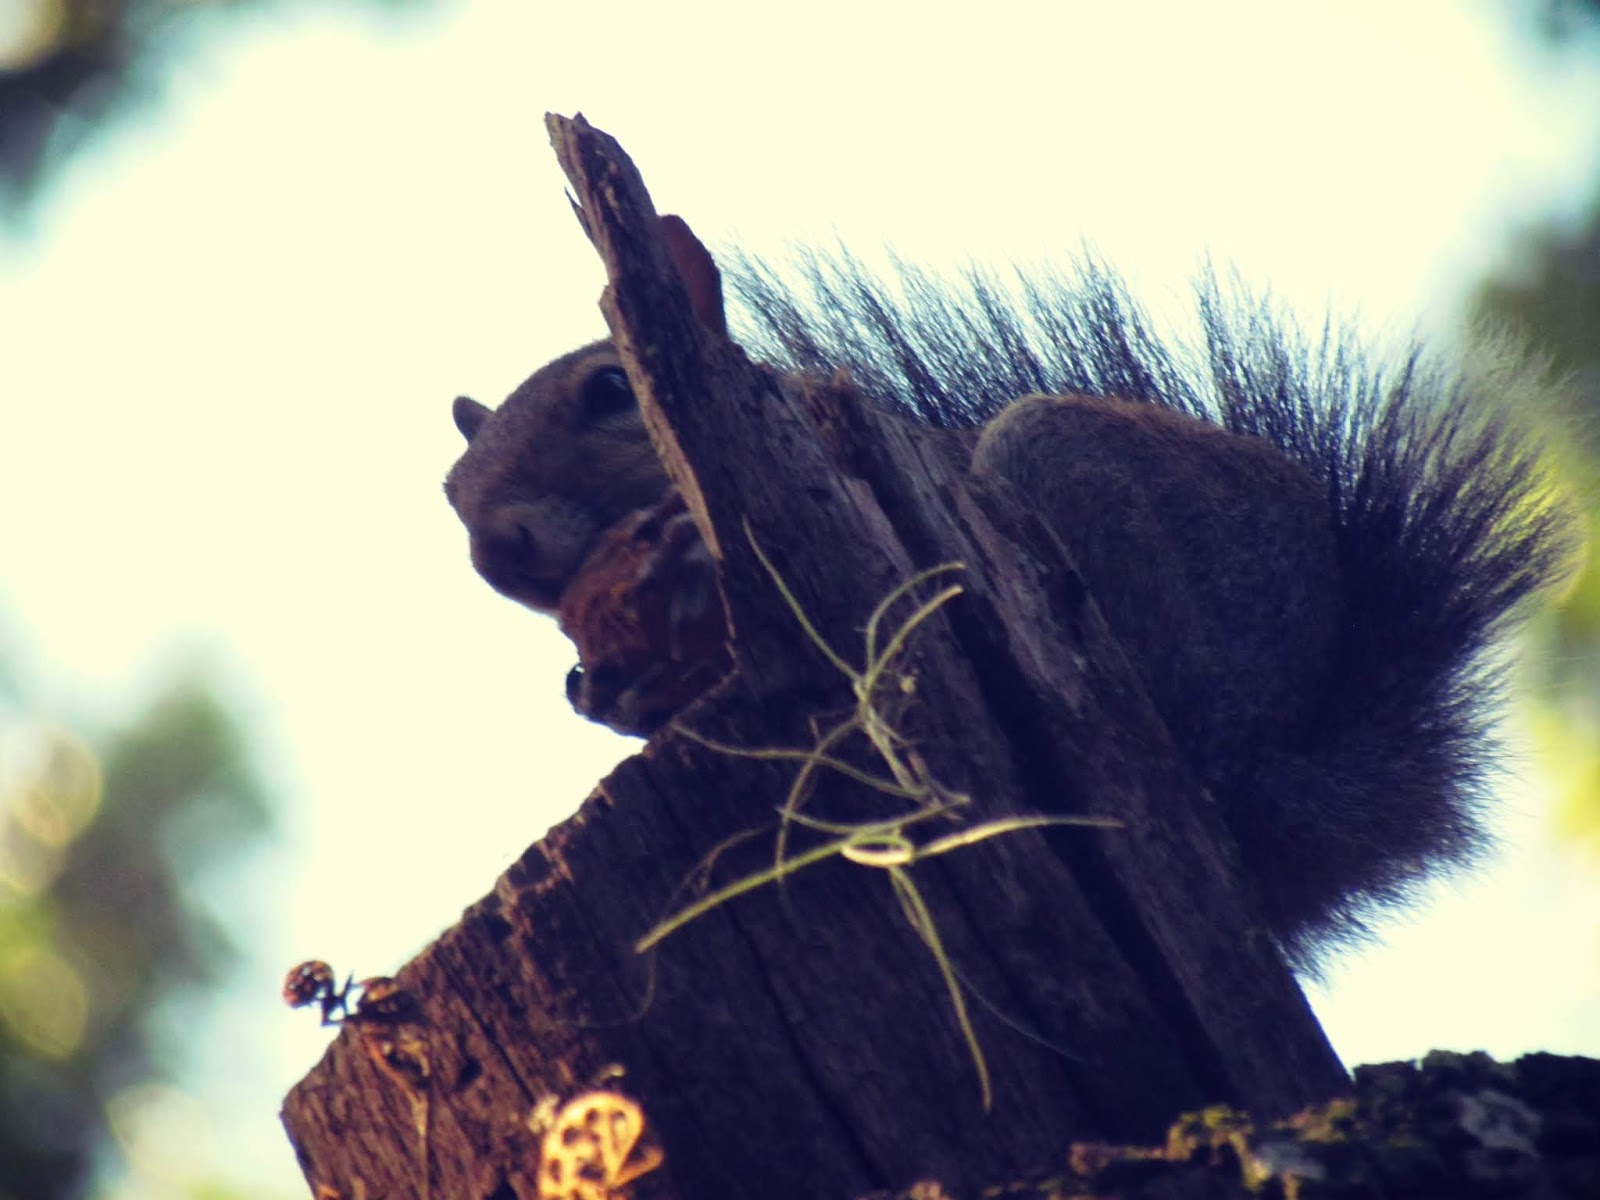 A woodland squirrel high up in an oak tree foraging acorns on a branch in Florida